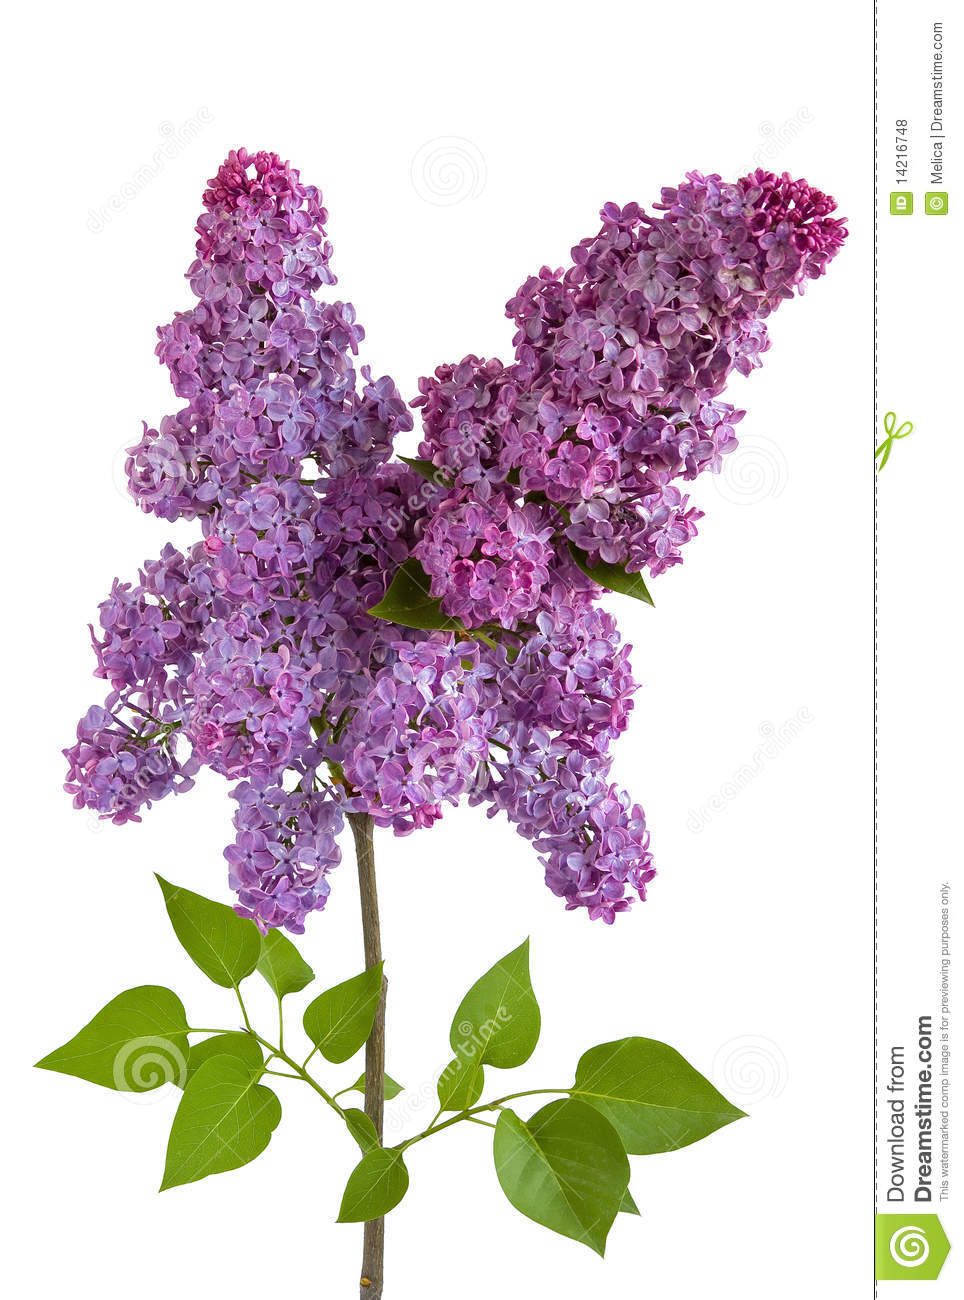 Lilac Royalty Free Stock Photos - Image: 14216748